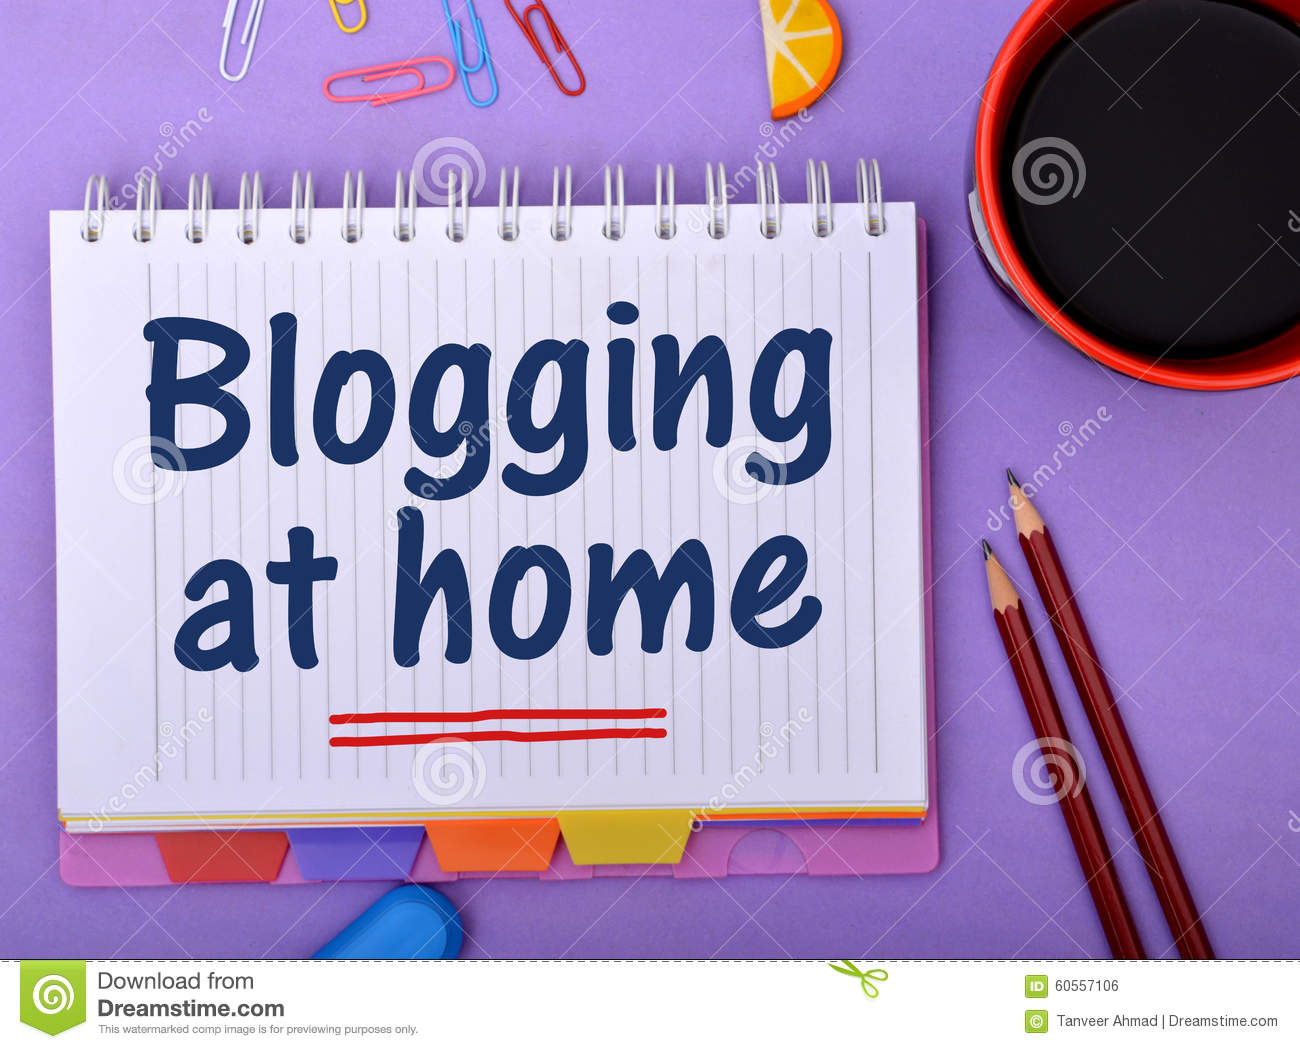 Blogging at home design with notepad